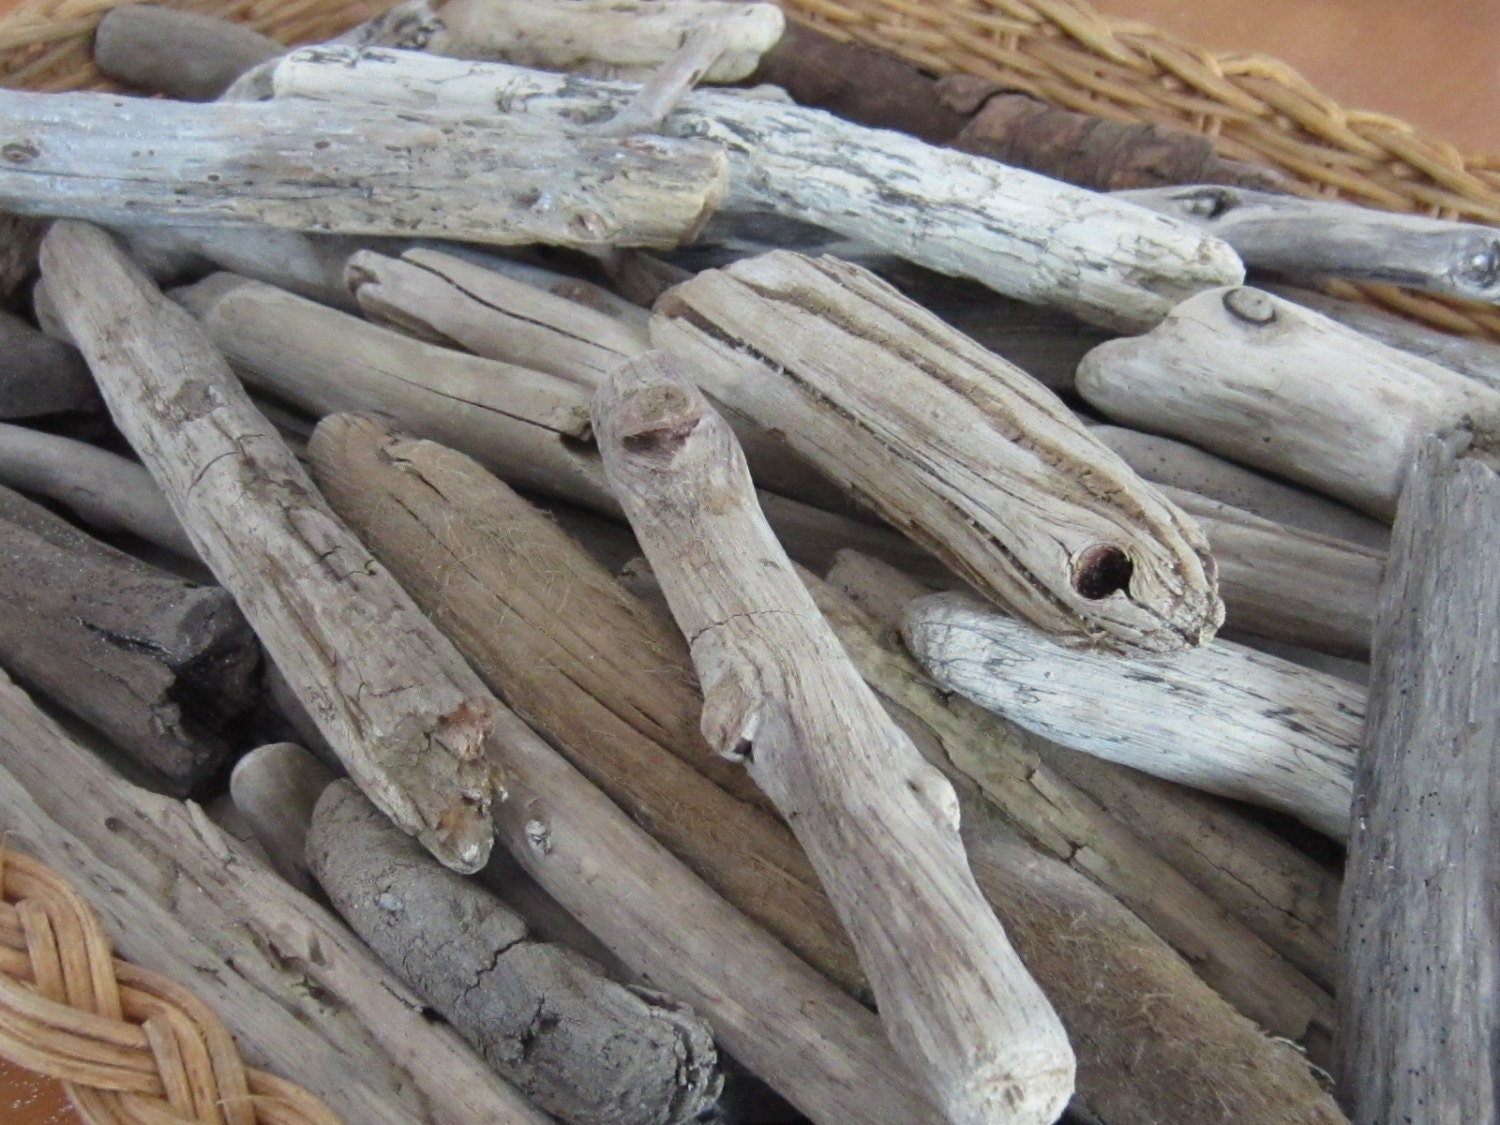 driftwood crafts ideas bulk lot maine driftwood 5lbs 350 pieces diy crafts 2 to 1904